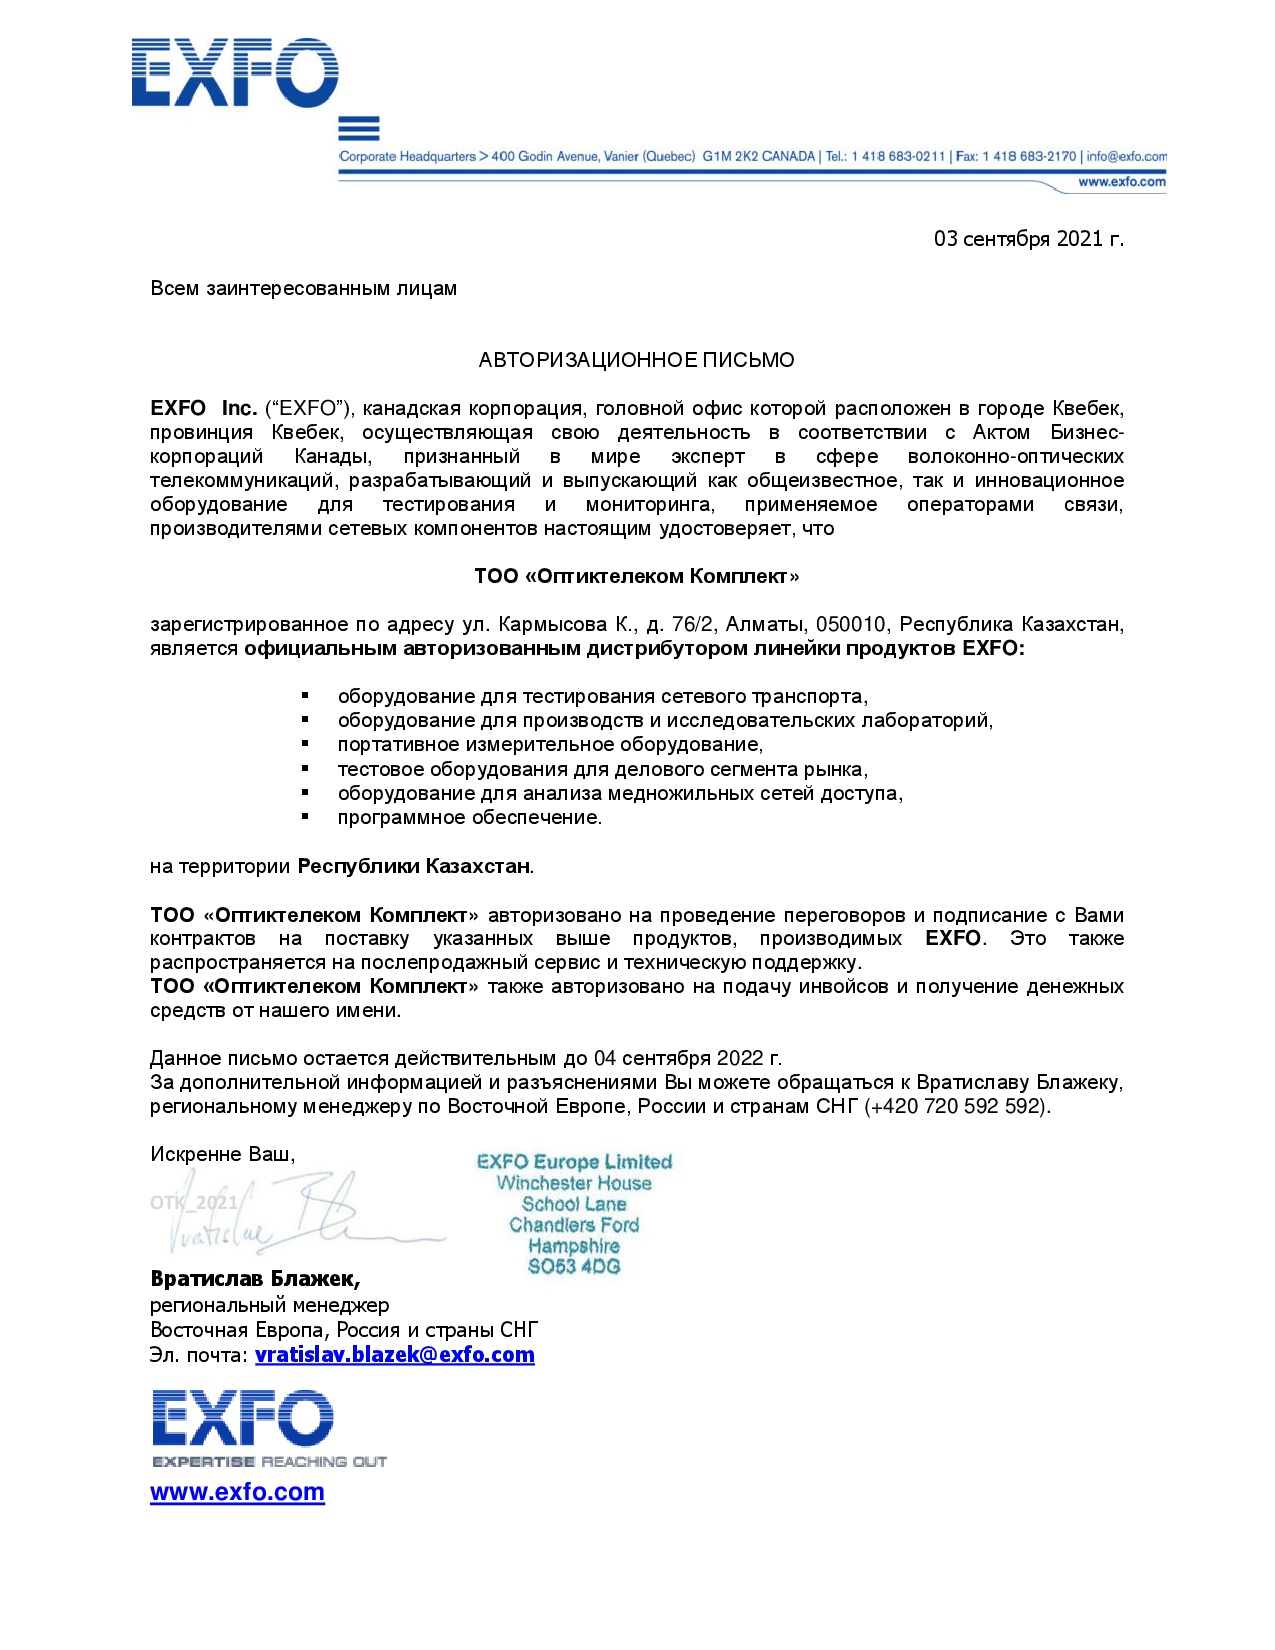 EXFO Inc. authorization letter